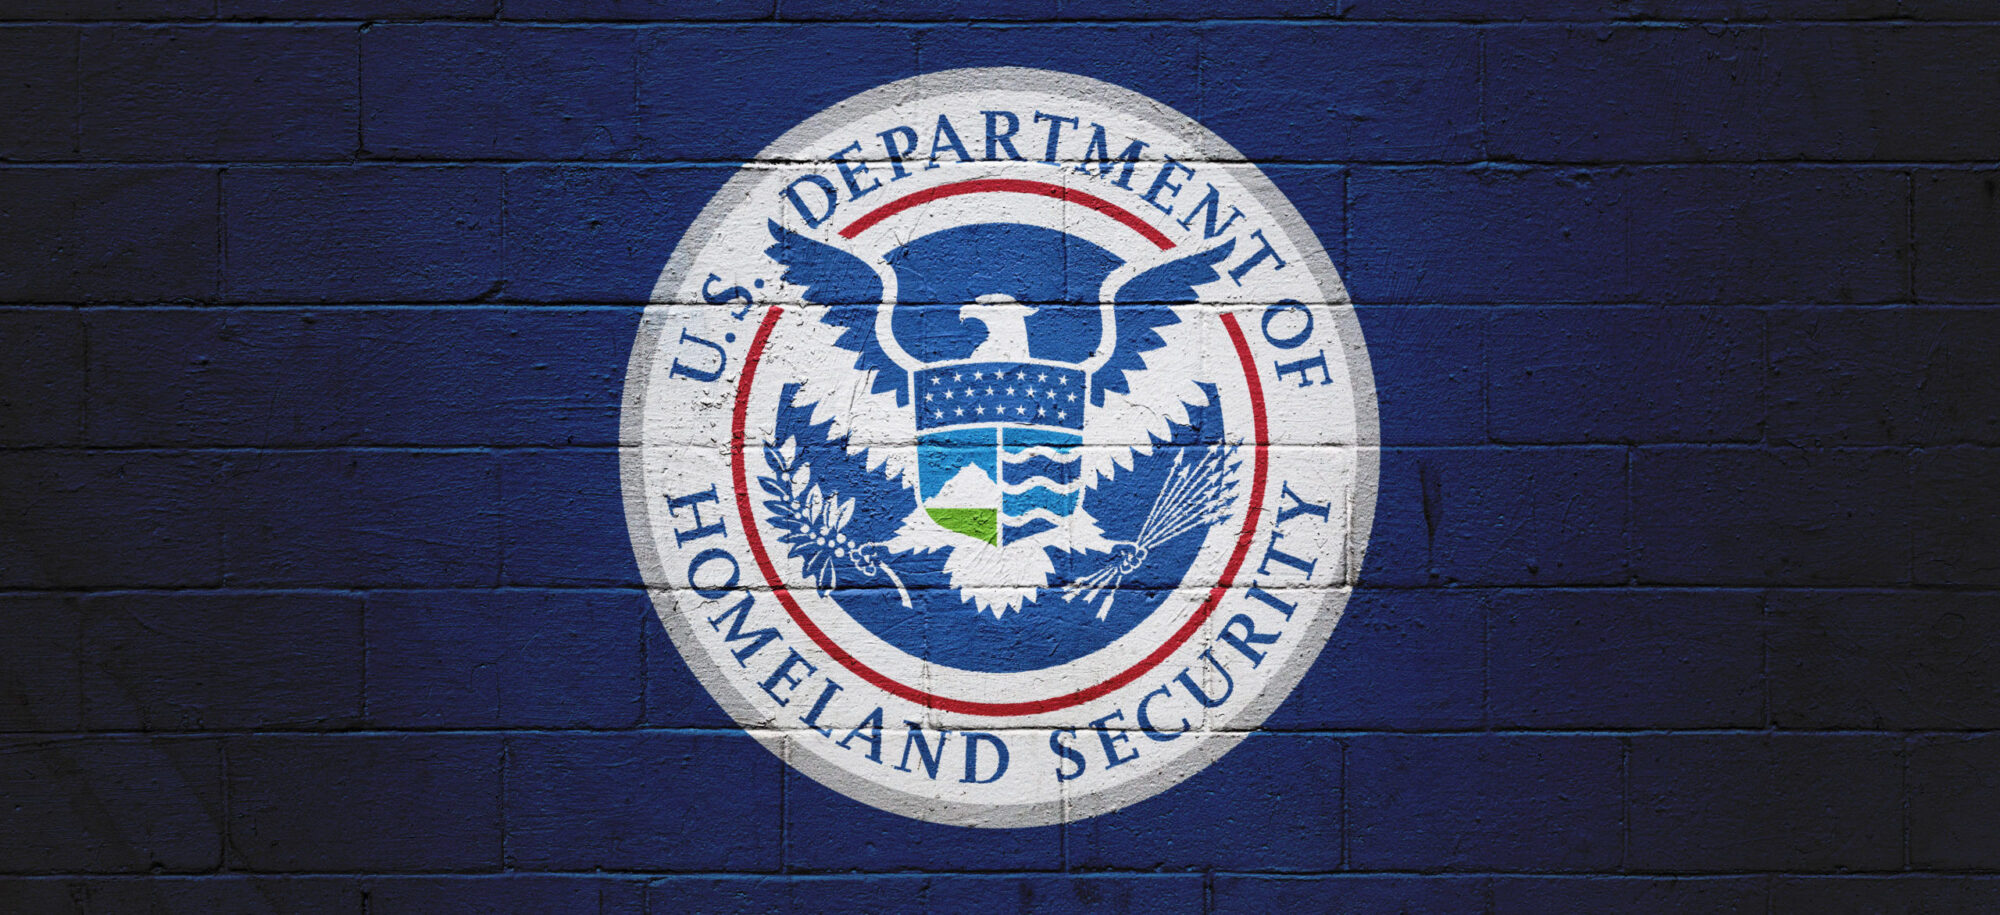 DHS Flag painted on a wall.